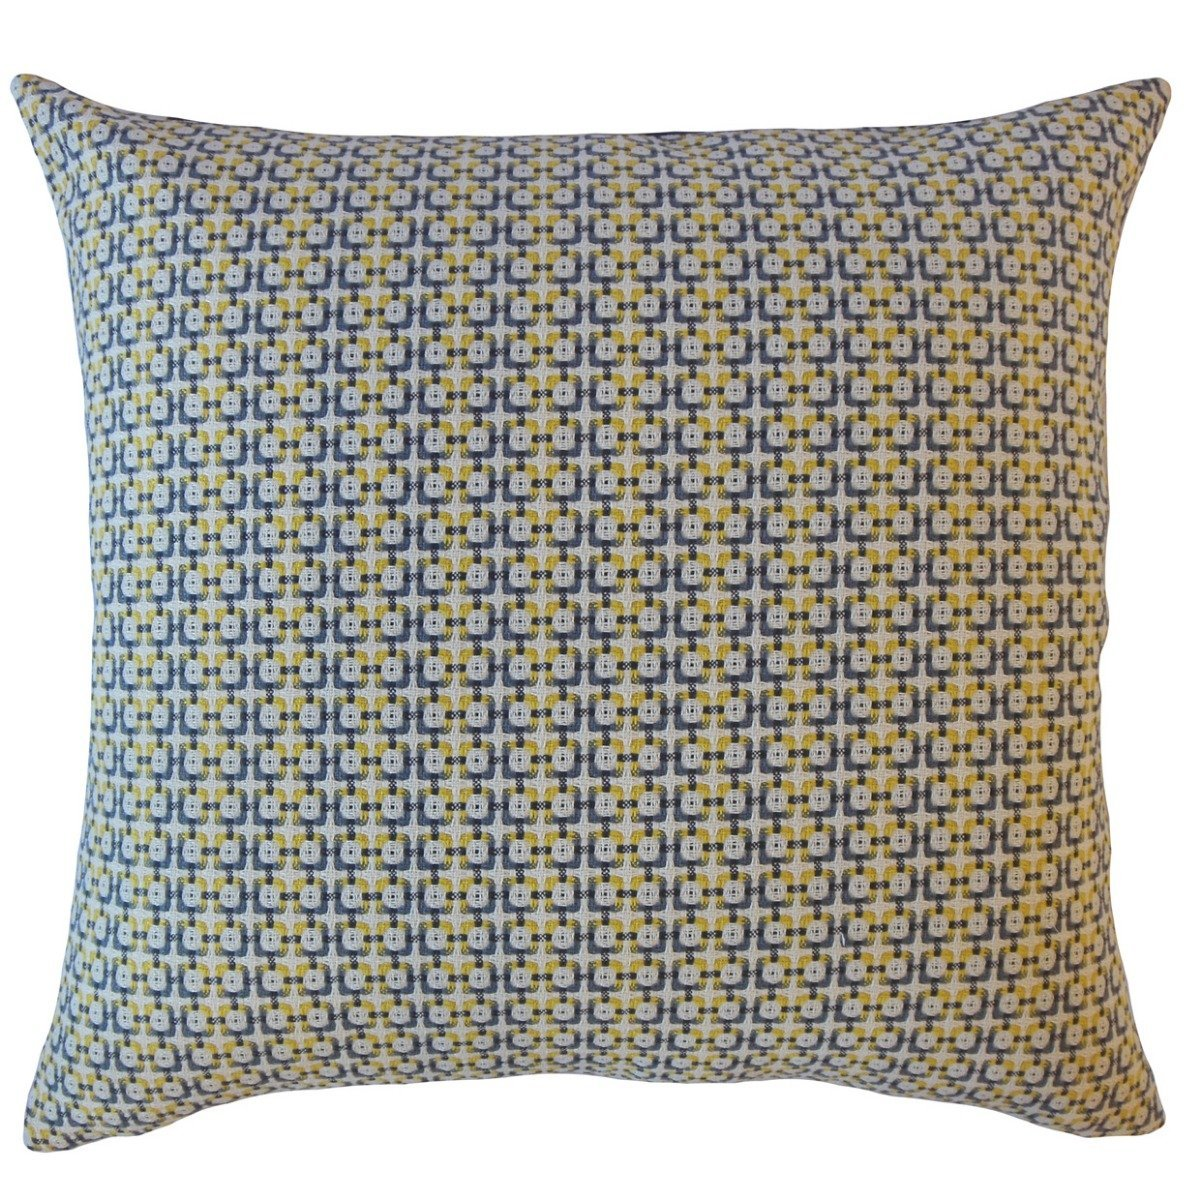 Sayers Throw Pillow Cover